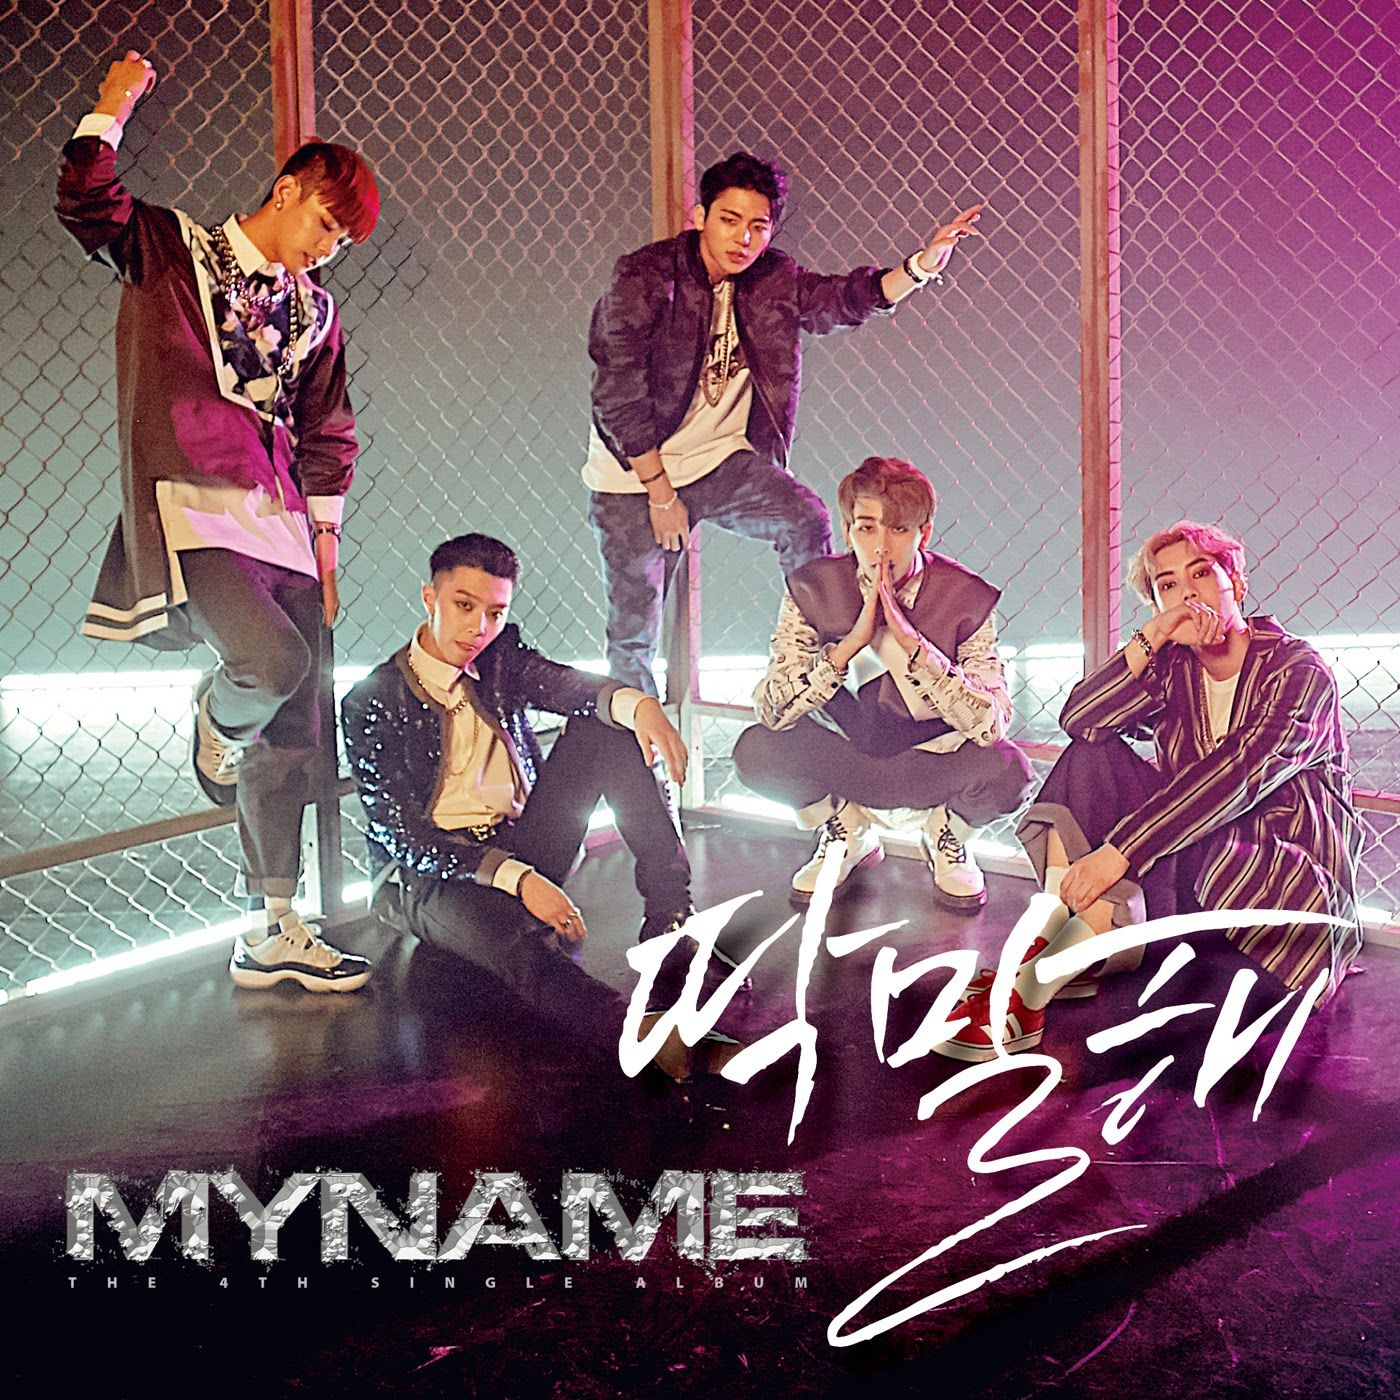 MYNAME return with 'Just Tell Me' MV